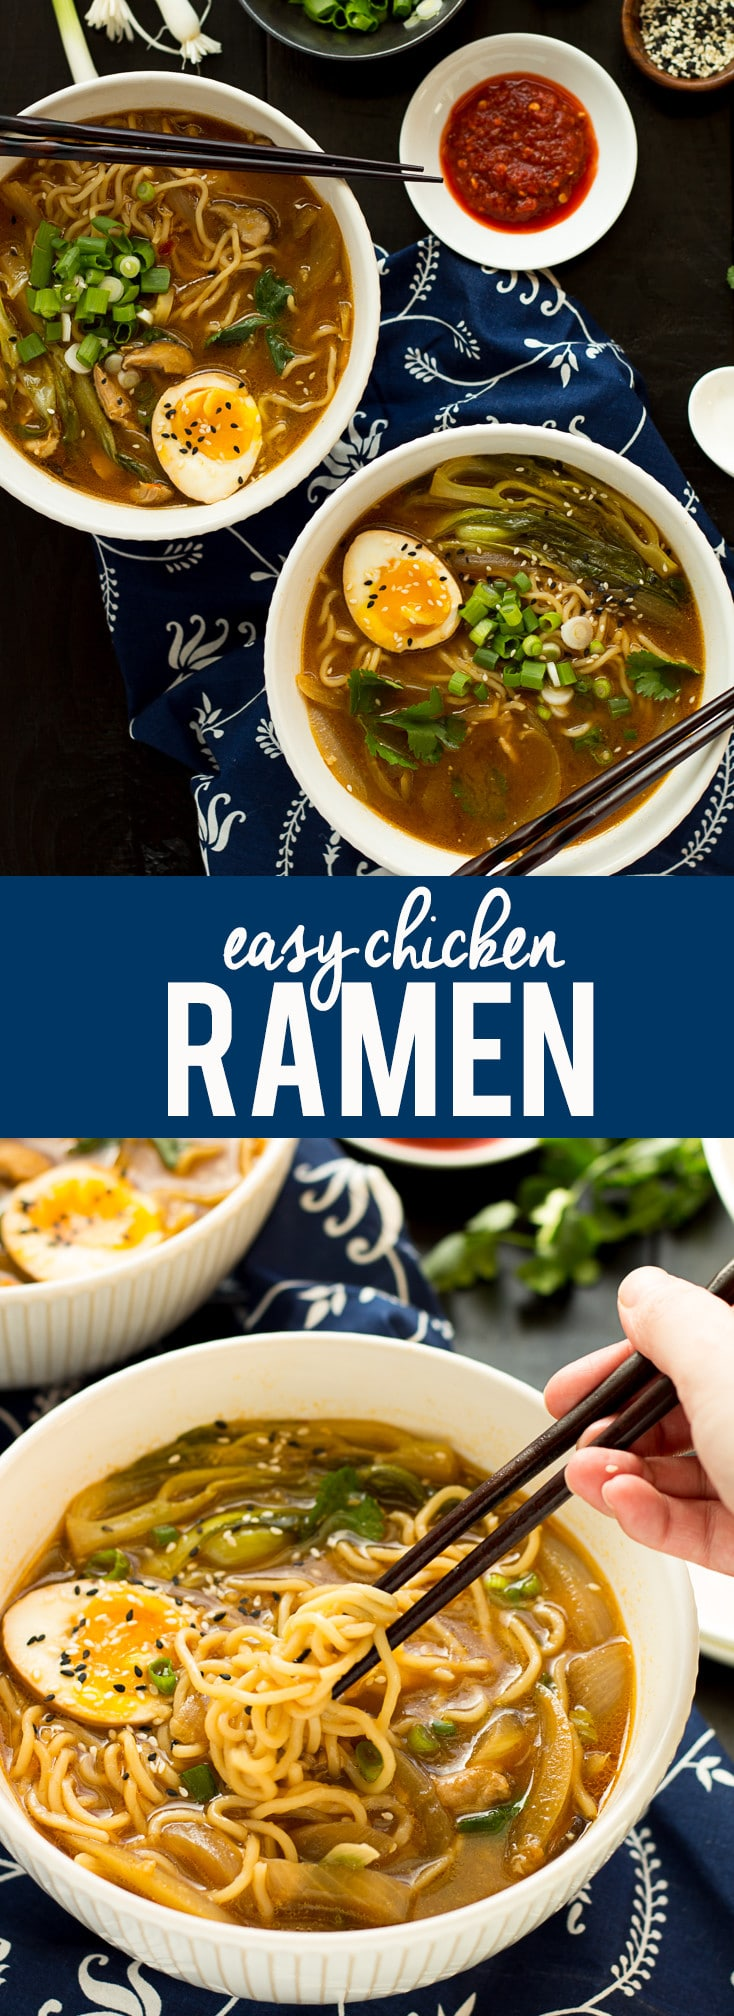 Japanese chicken ramen noodle recipes